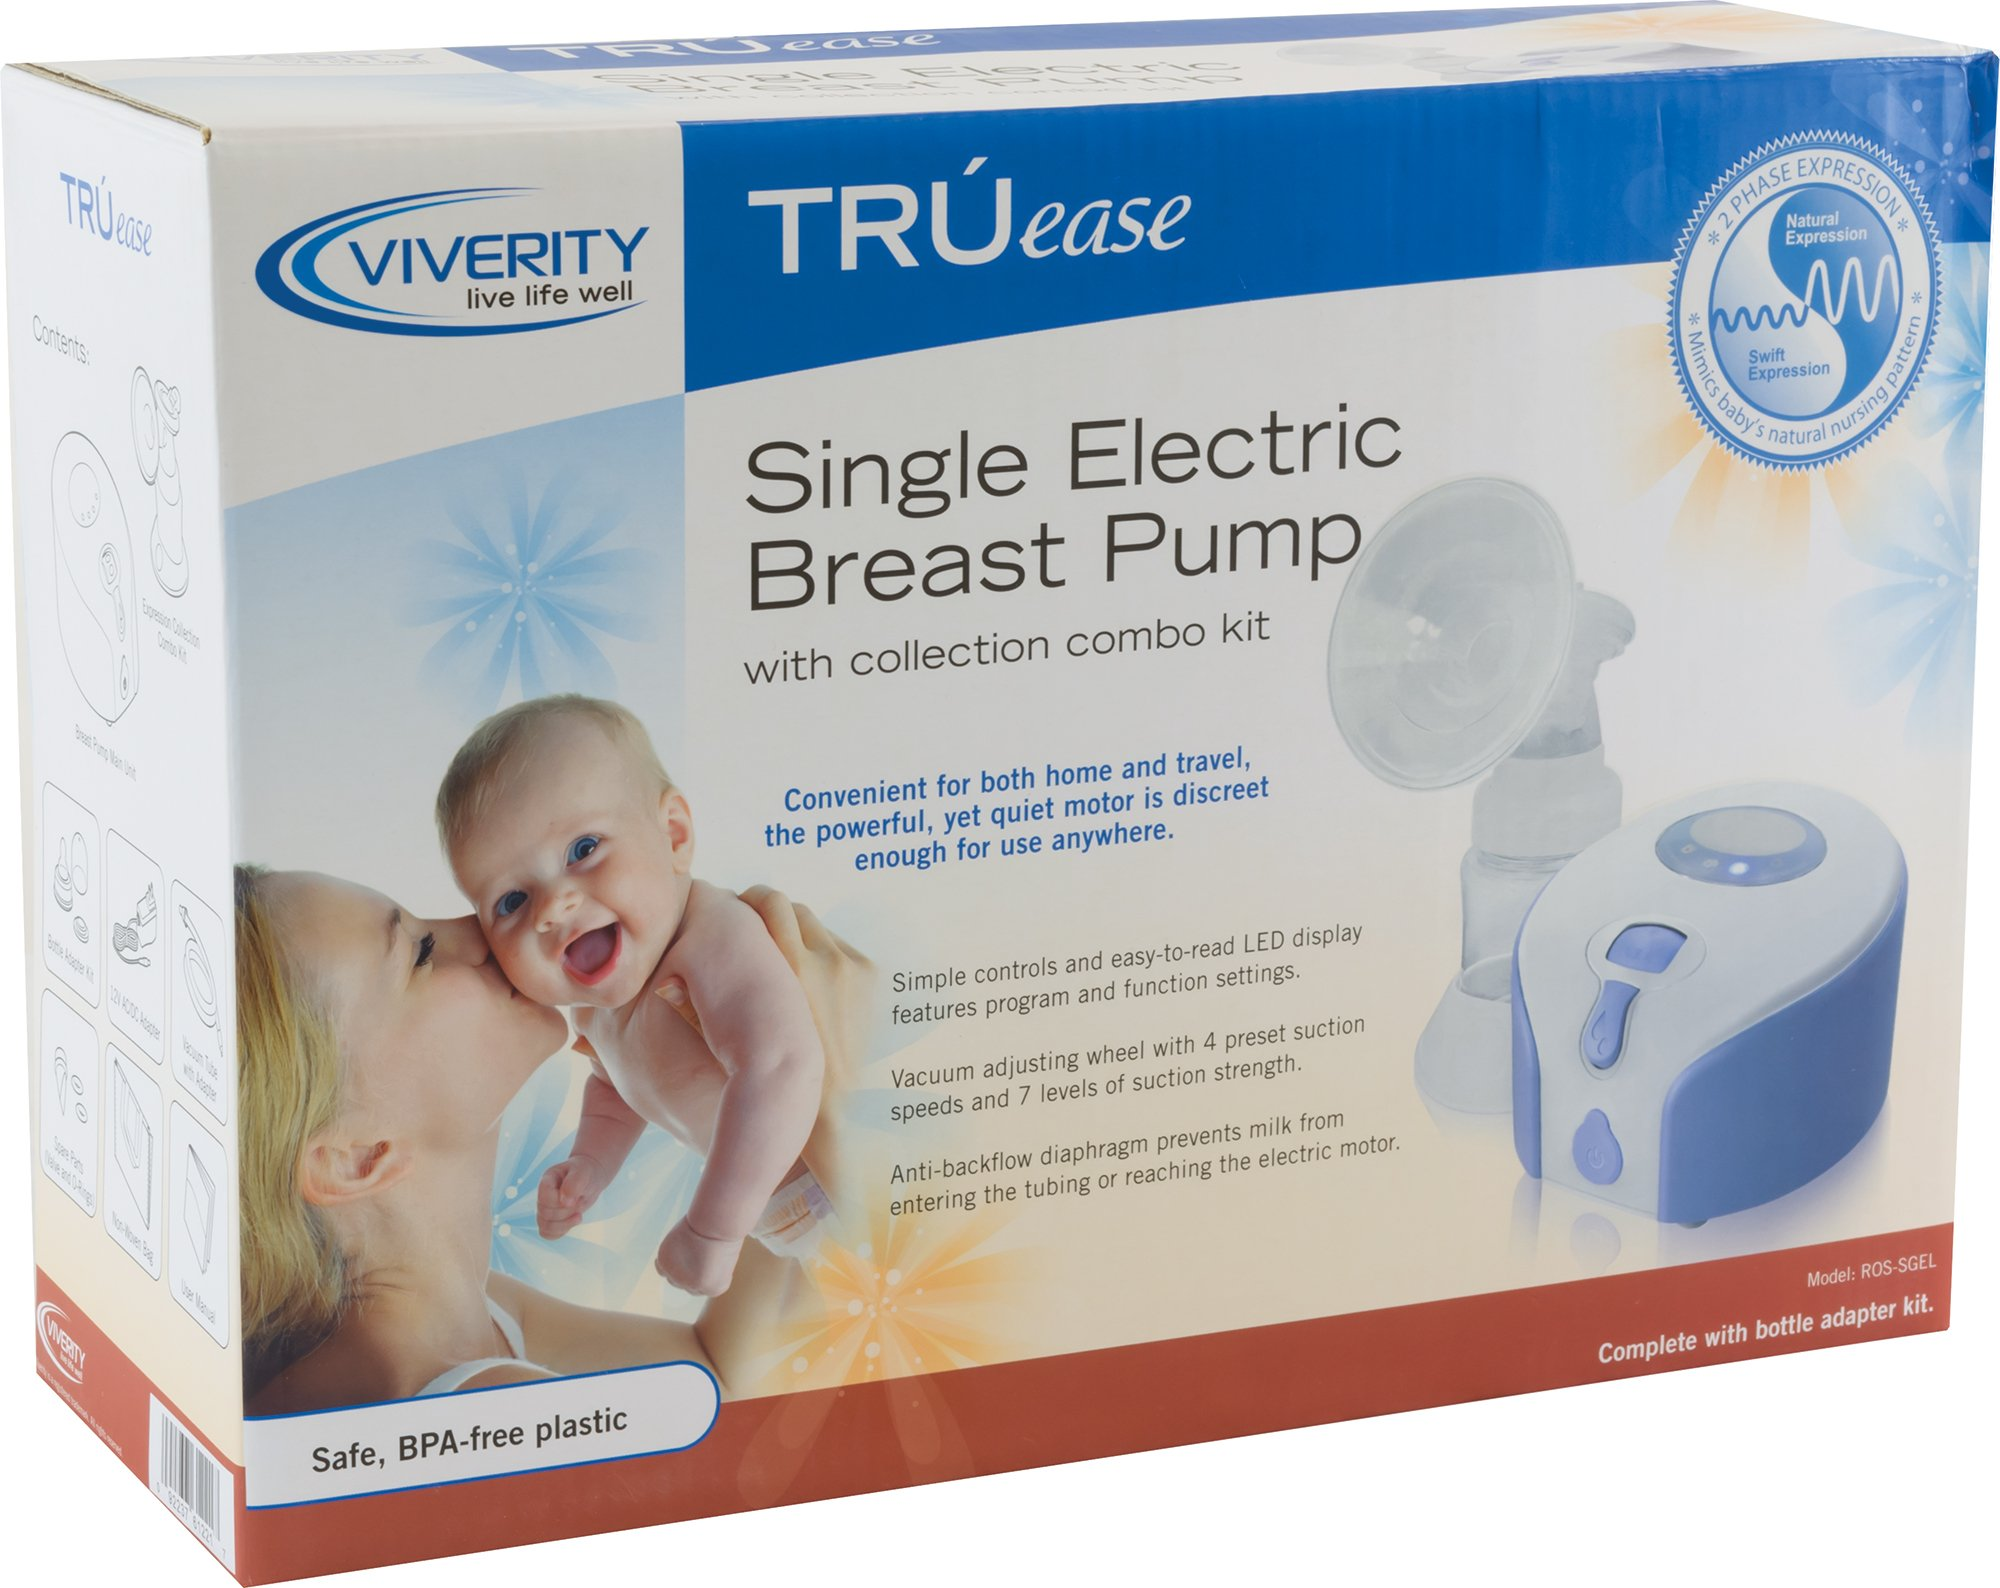 Viverity ROS-SGEL Truease Single Electric Breast Pump with Collection Combo Kit